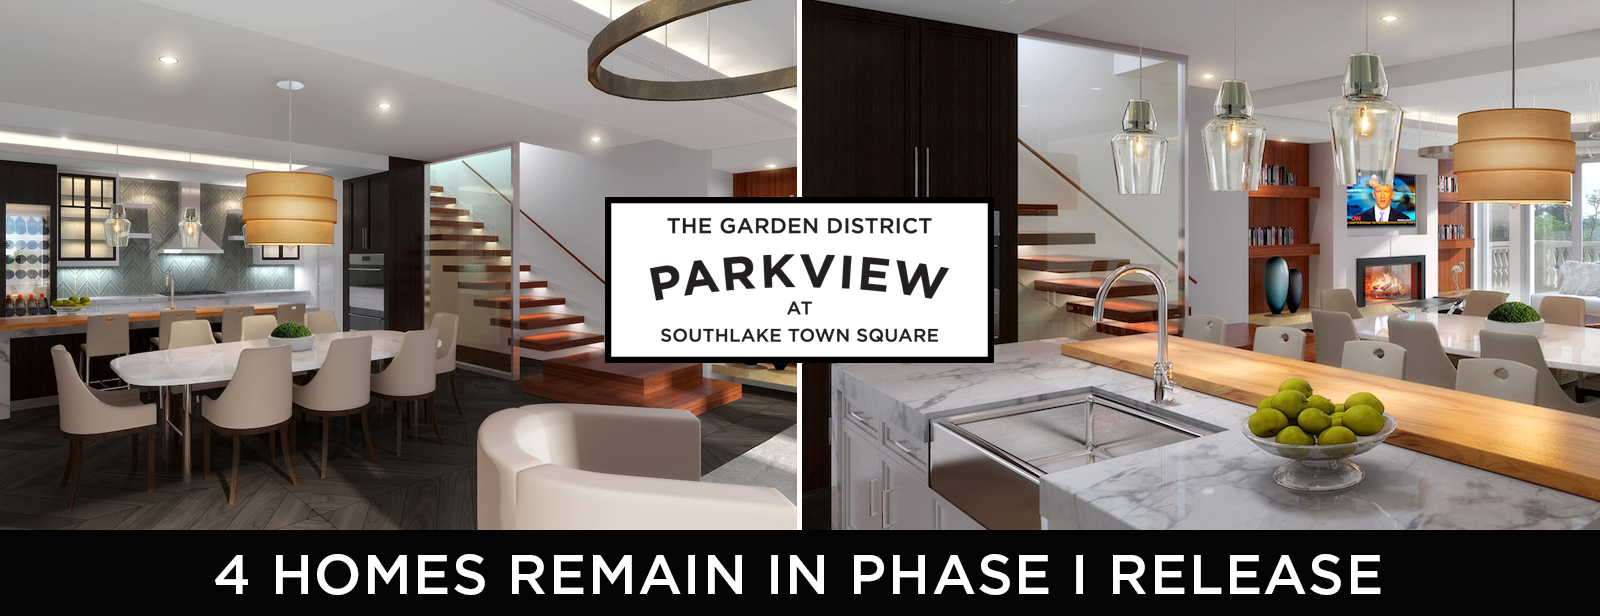 Parkview Residences Phase I Release